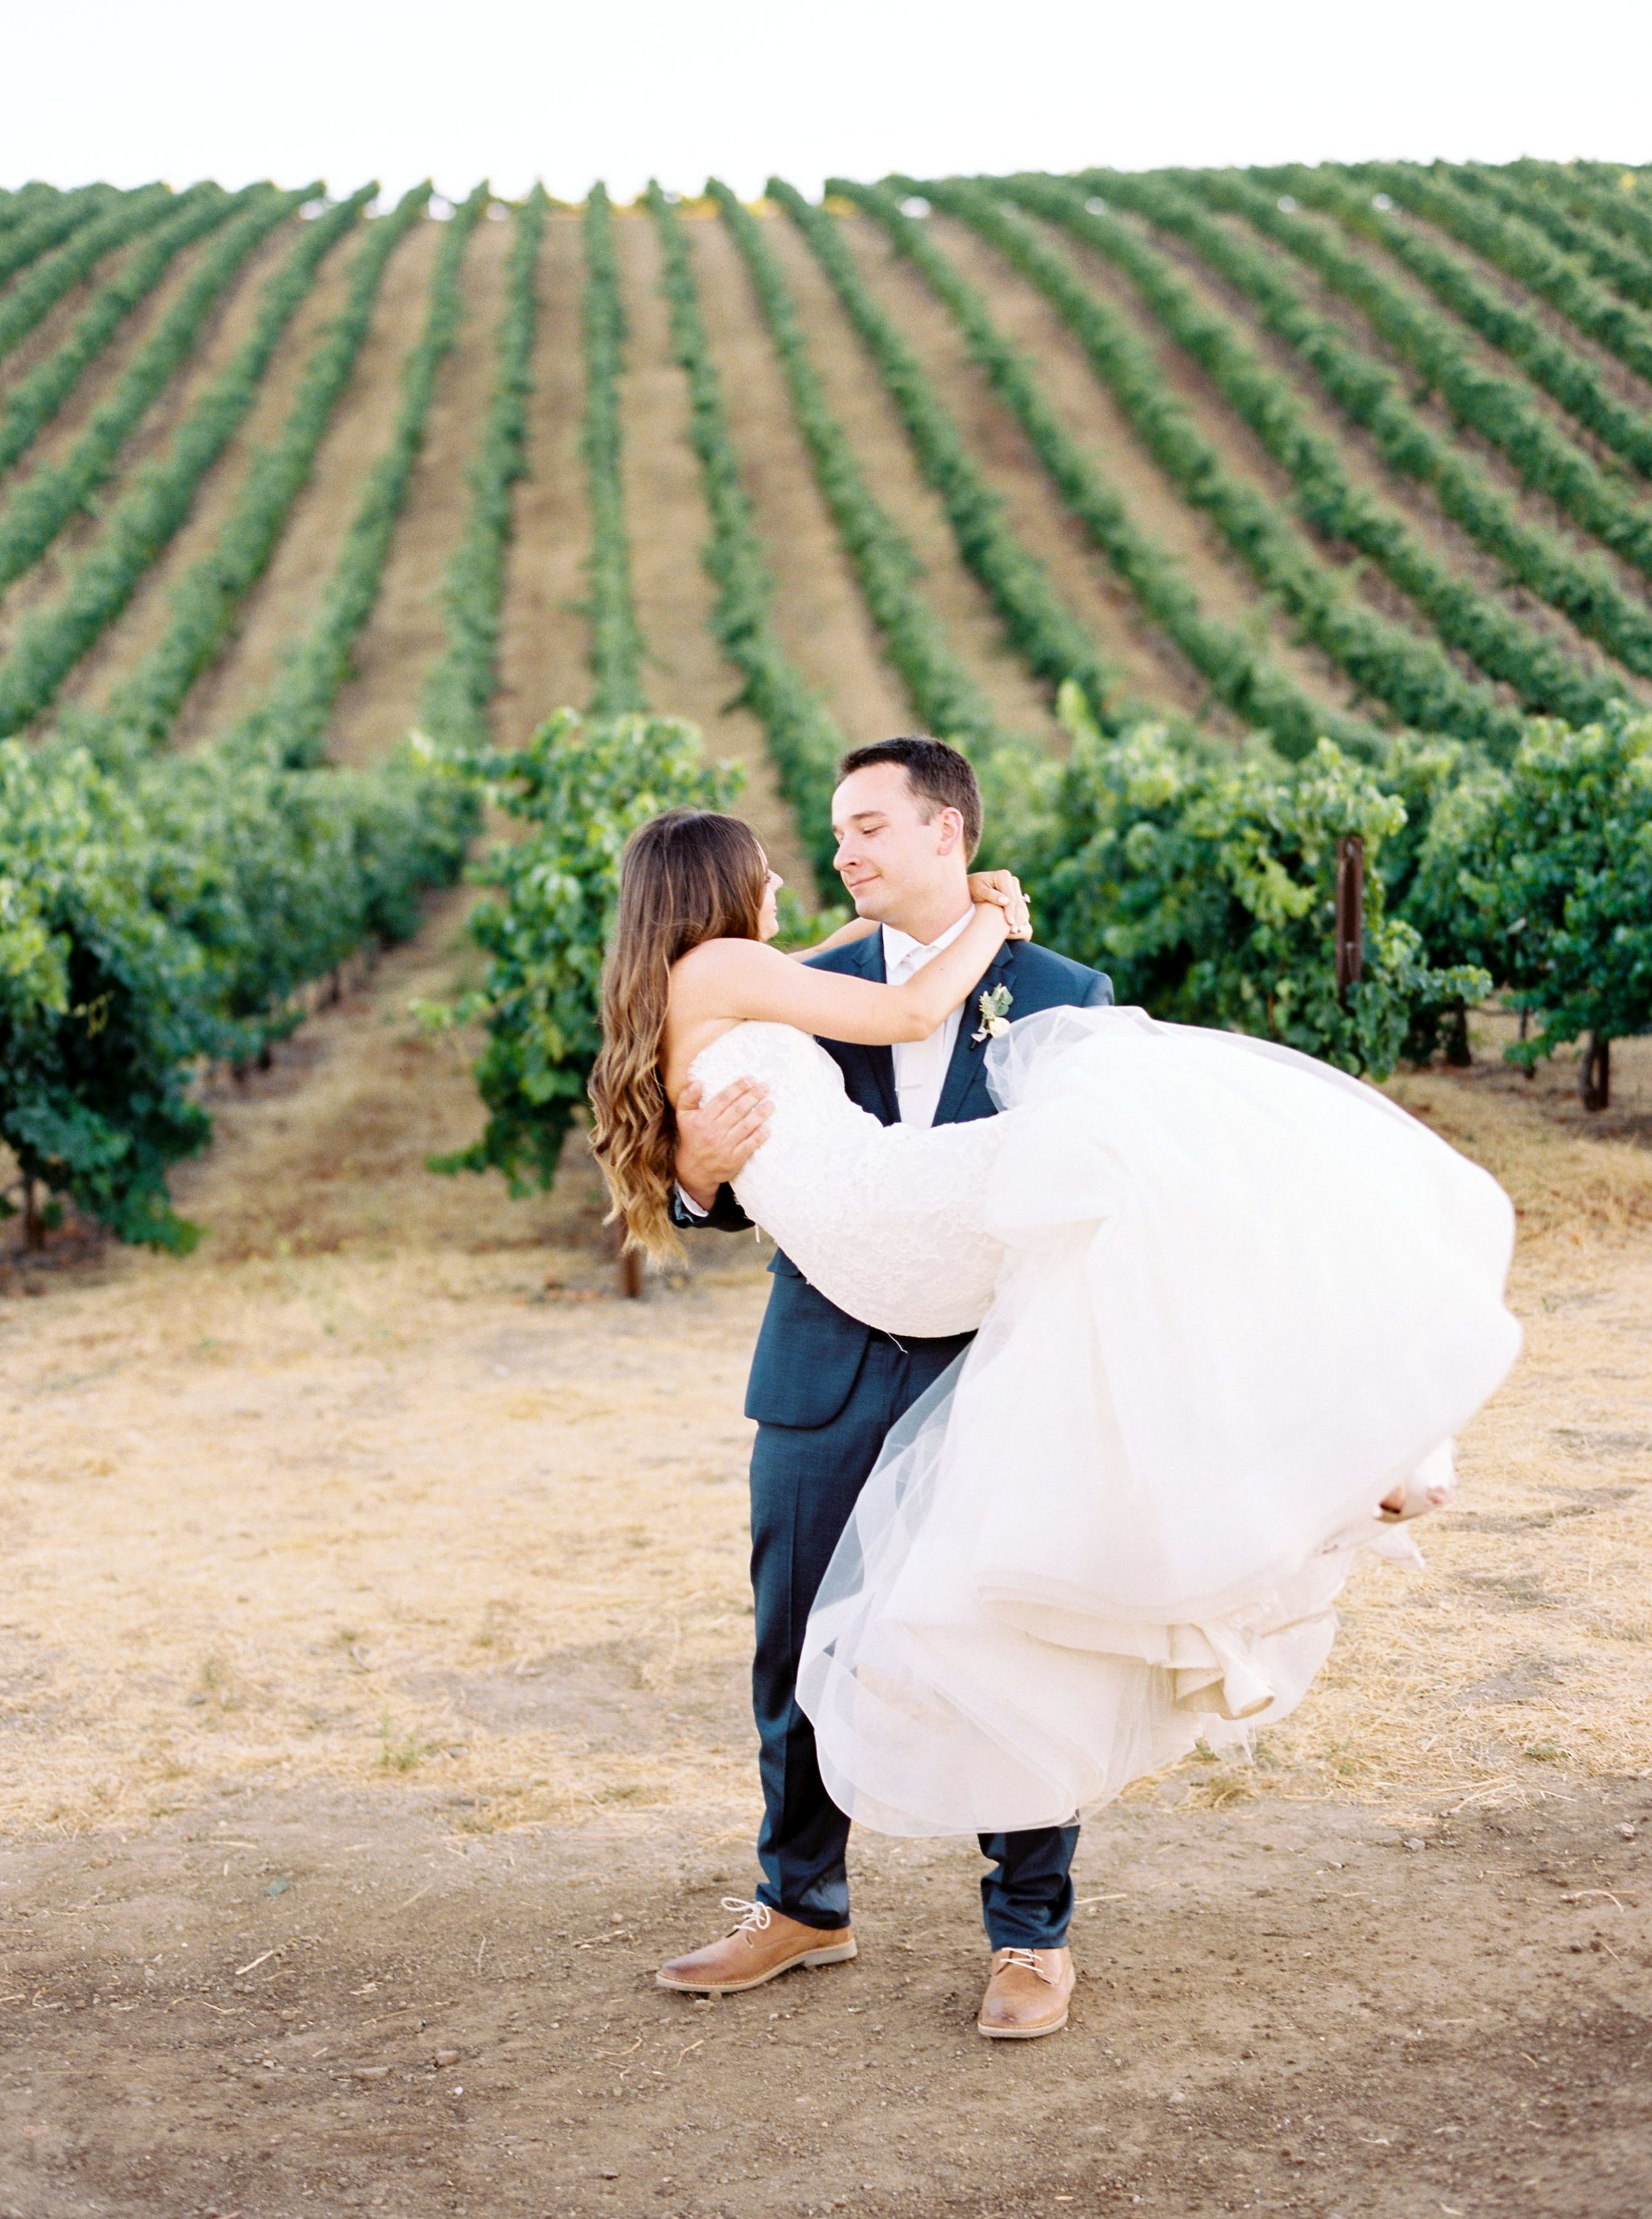 muriettas-well-wedding-in-livermore-california-46.jpg